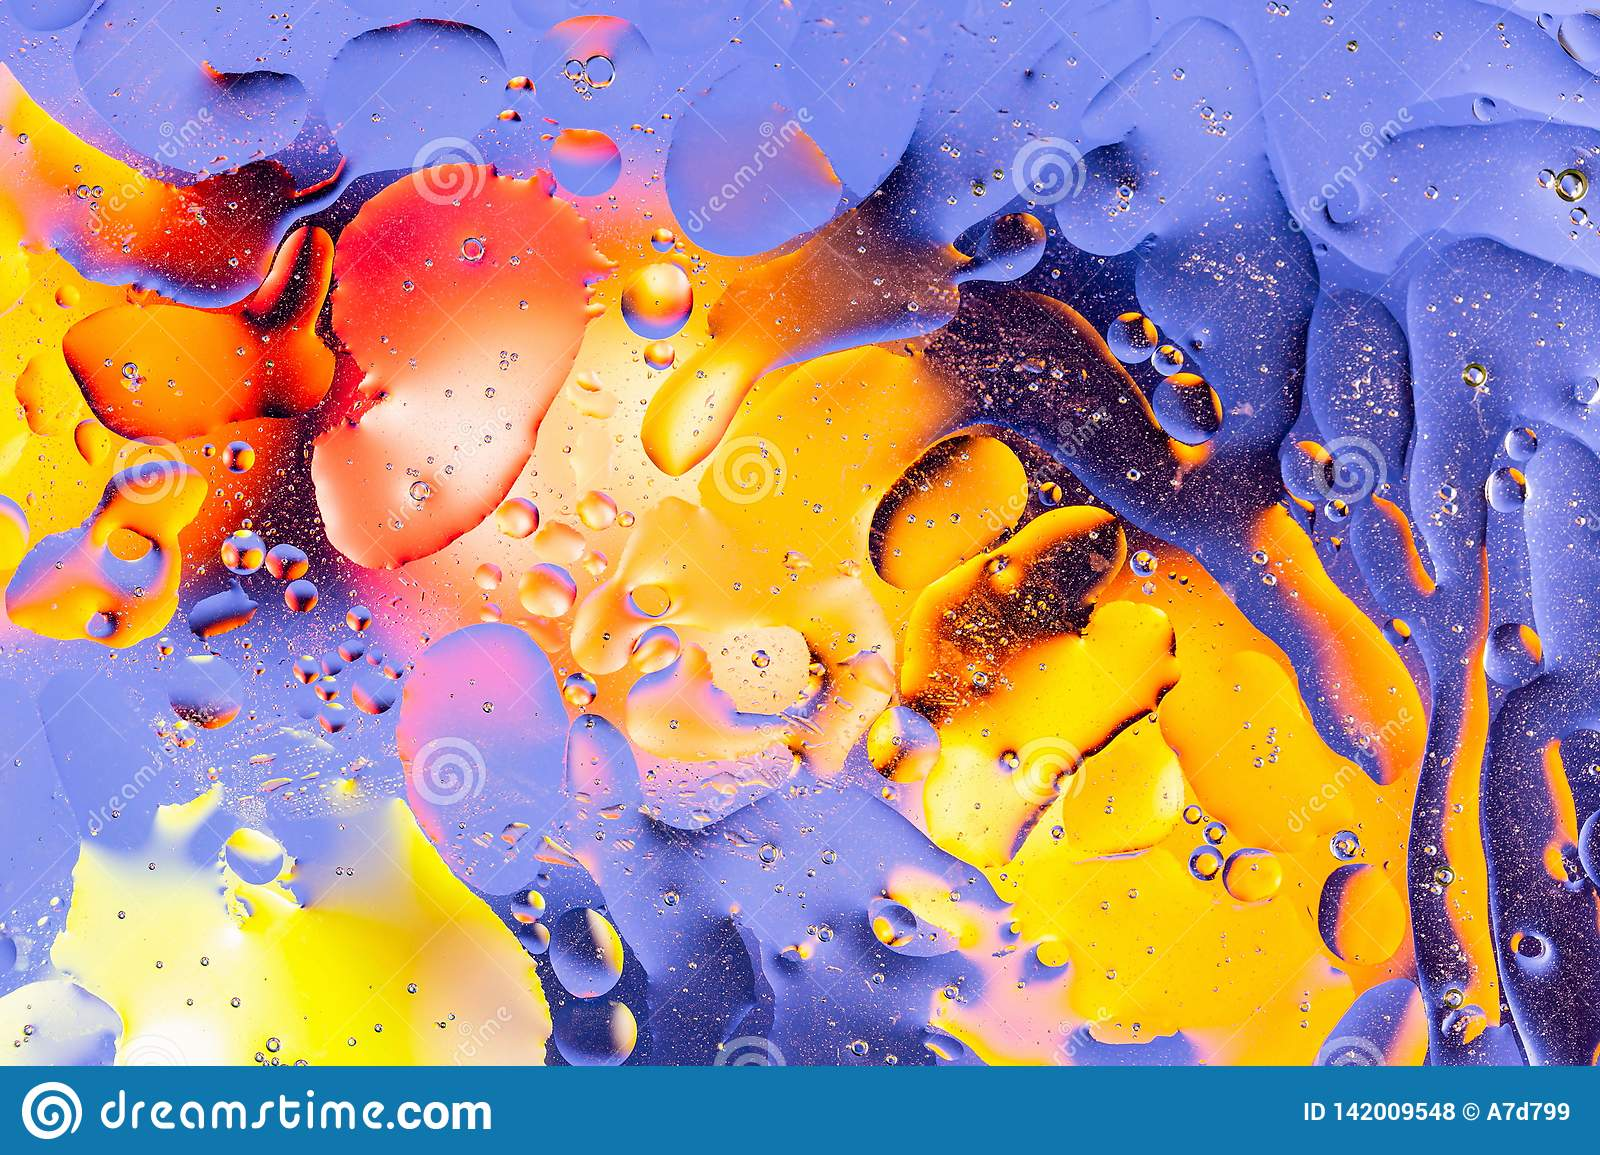 Red, orange, blue, yellow colorful abstract design, texture. Beautiful backgrounds.